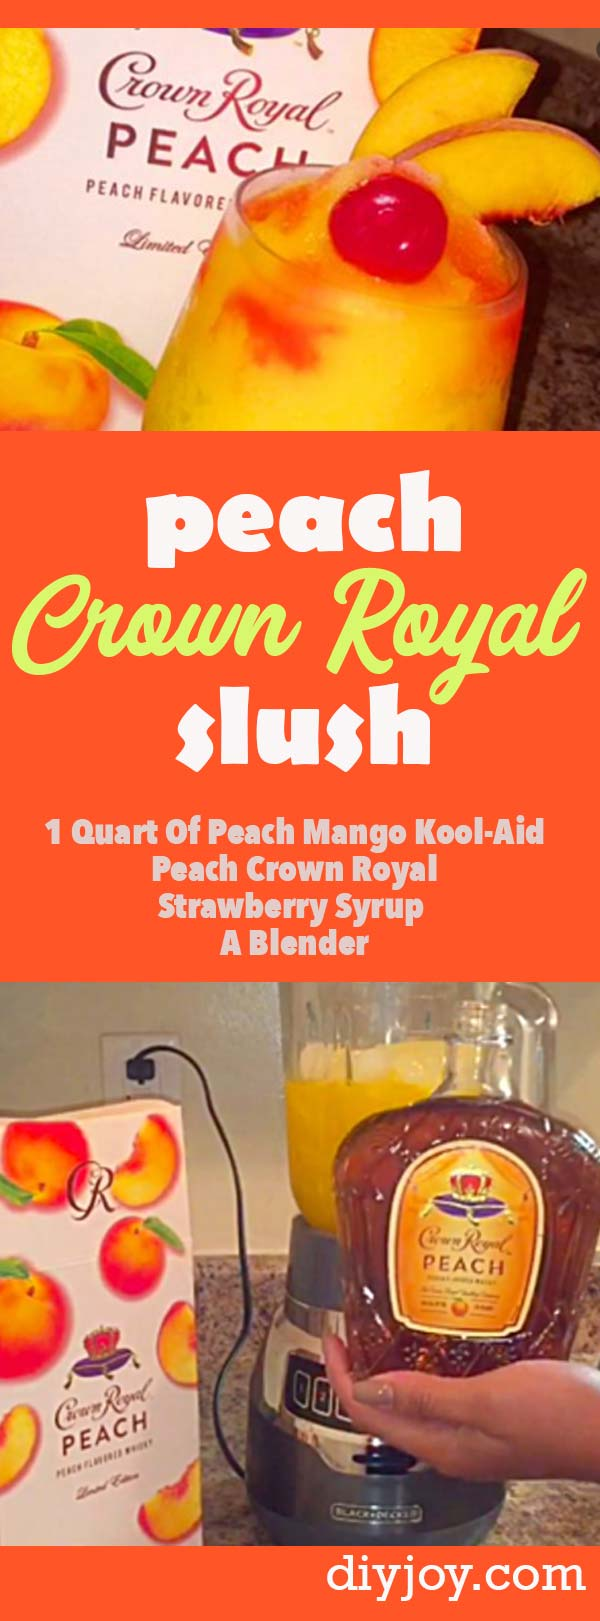 Peach Slush Recipe With Crown Royal - Easy Frozen Drink Recipes for Summer Parties